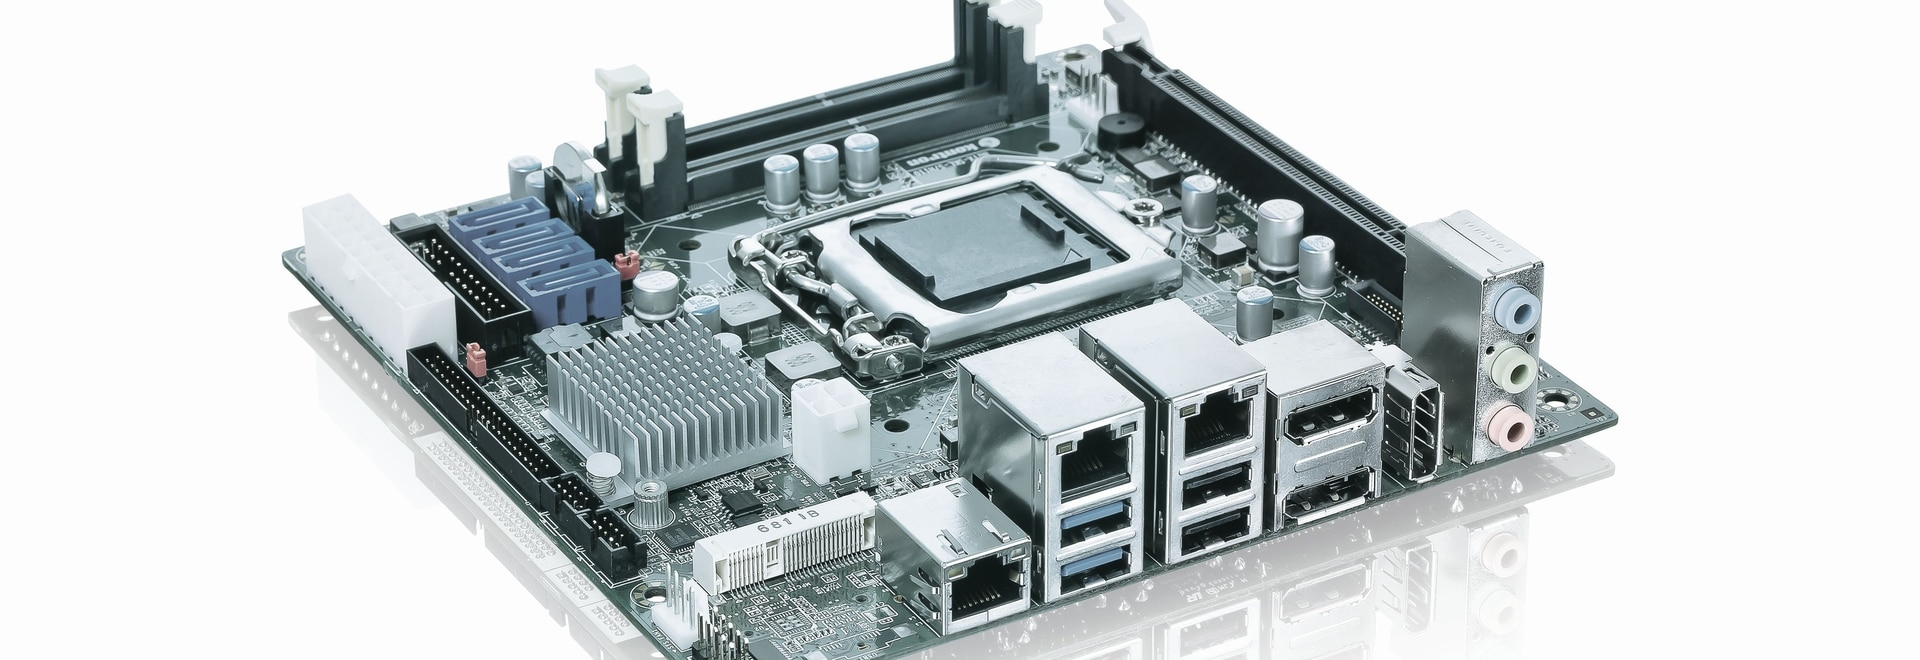 New Kontron Embedded mITX Desktop Motherboard - extended features and higher performance in mini format